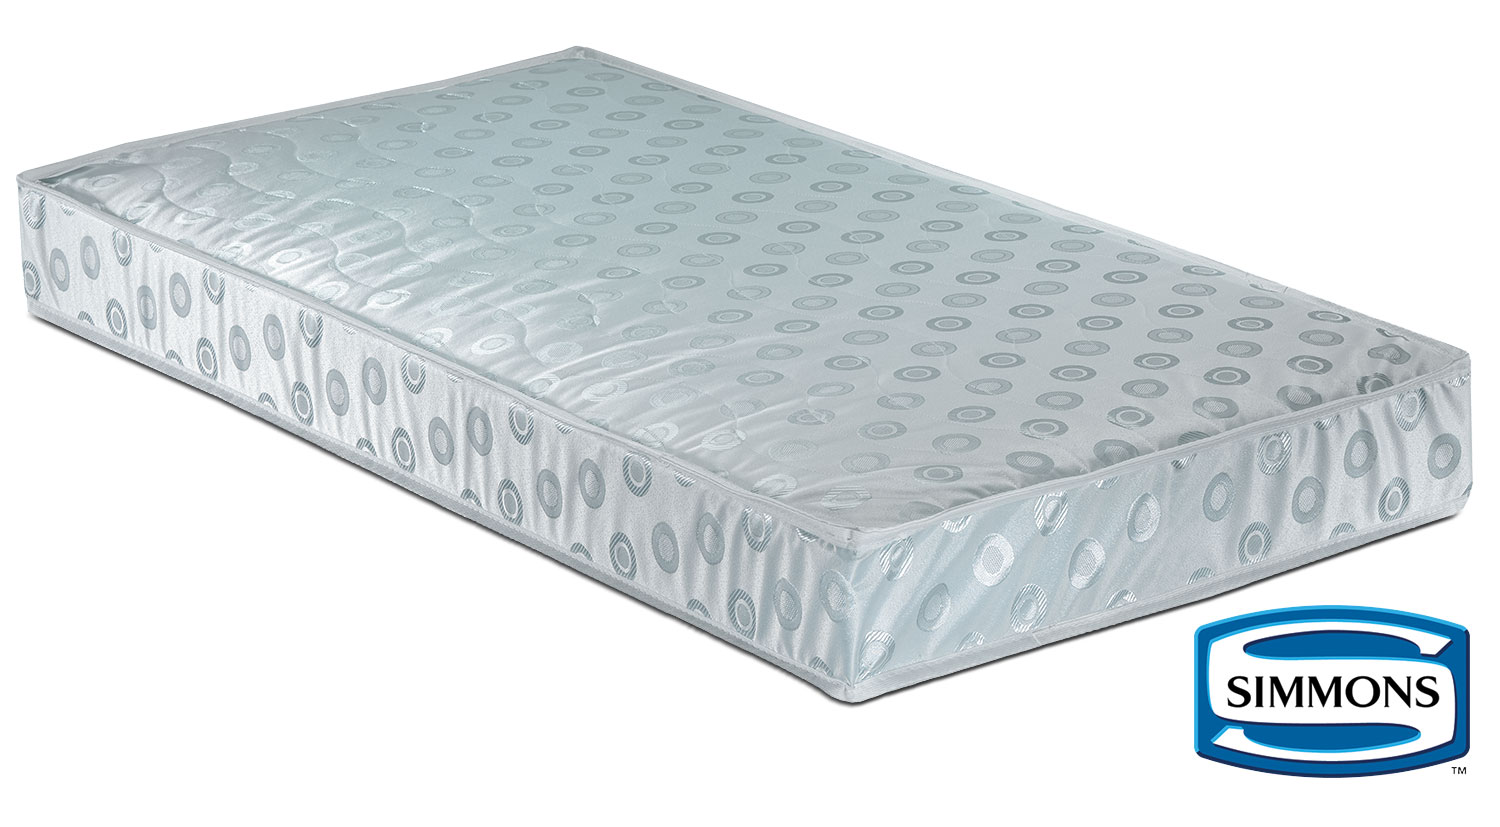 Mattresses and Bedding - Dreamweaver Crib Mattress